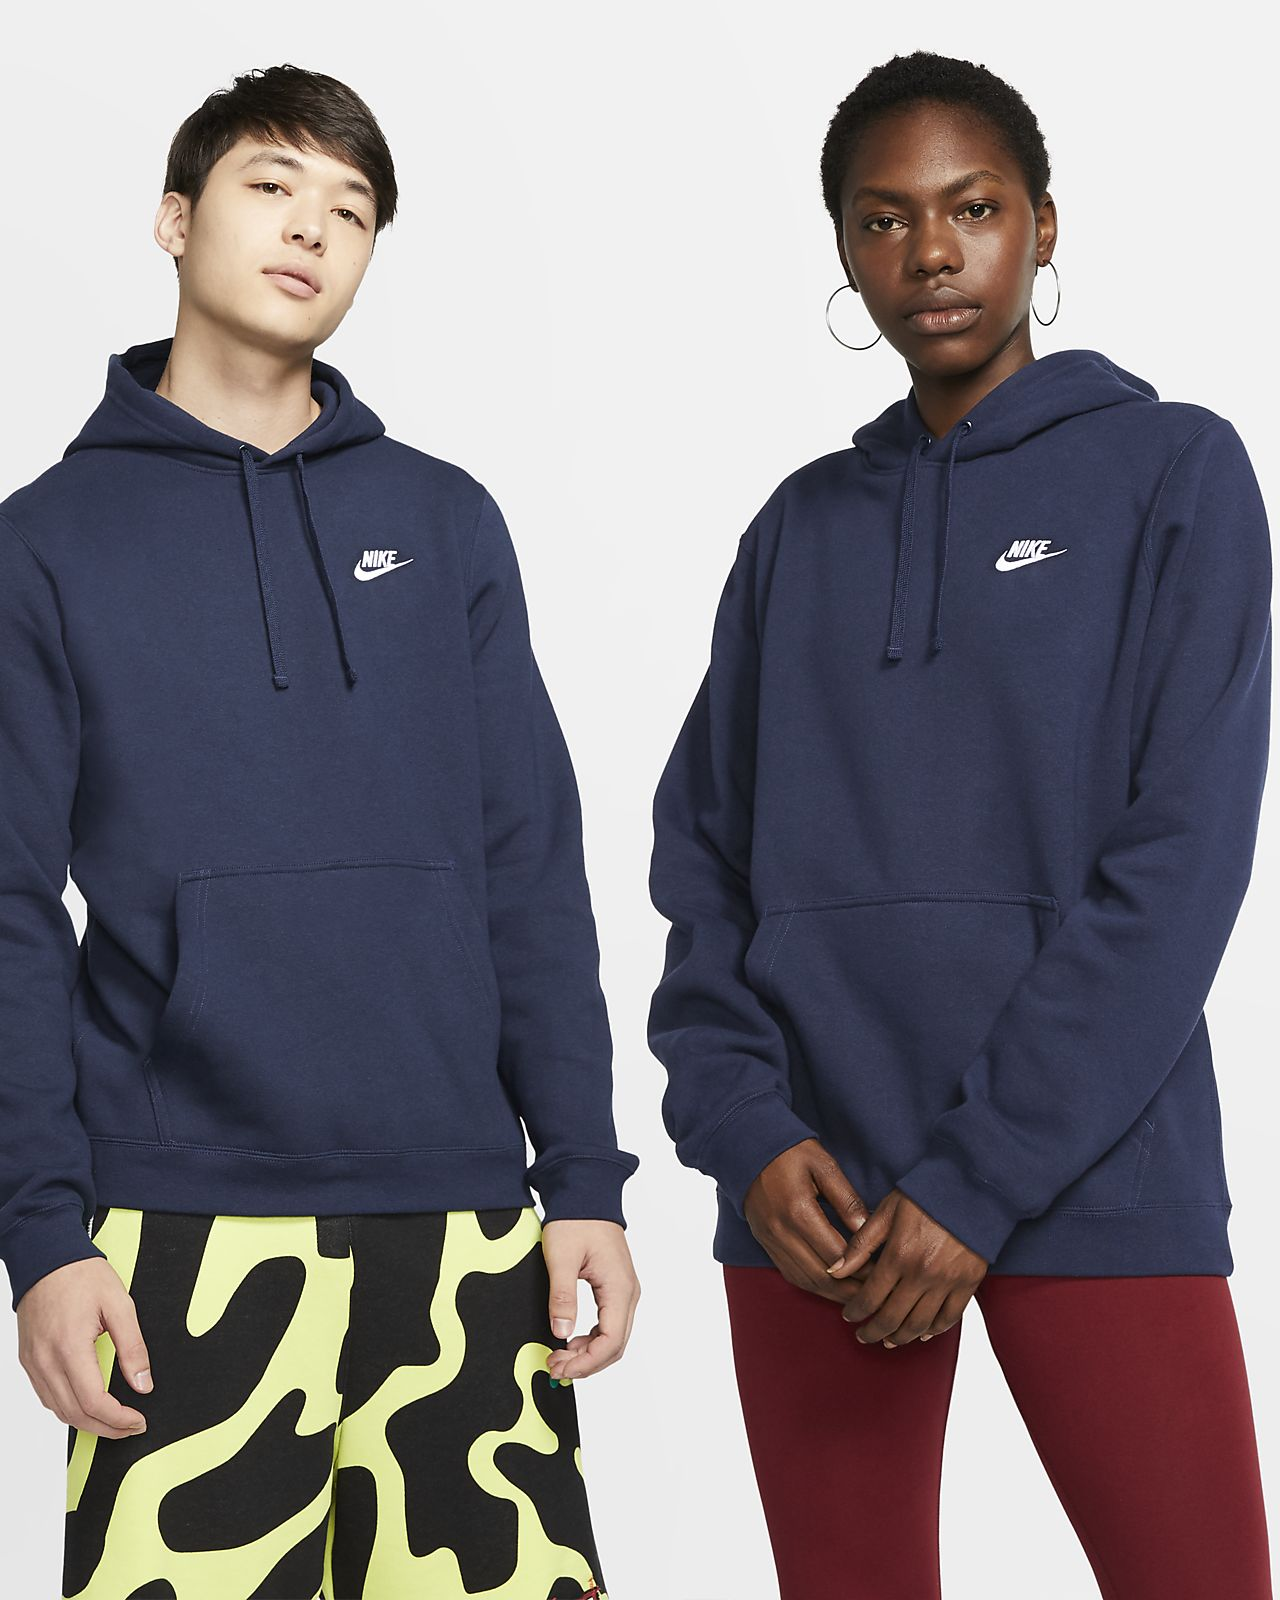 nike polo jumper